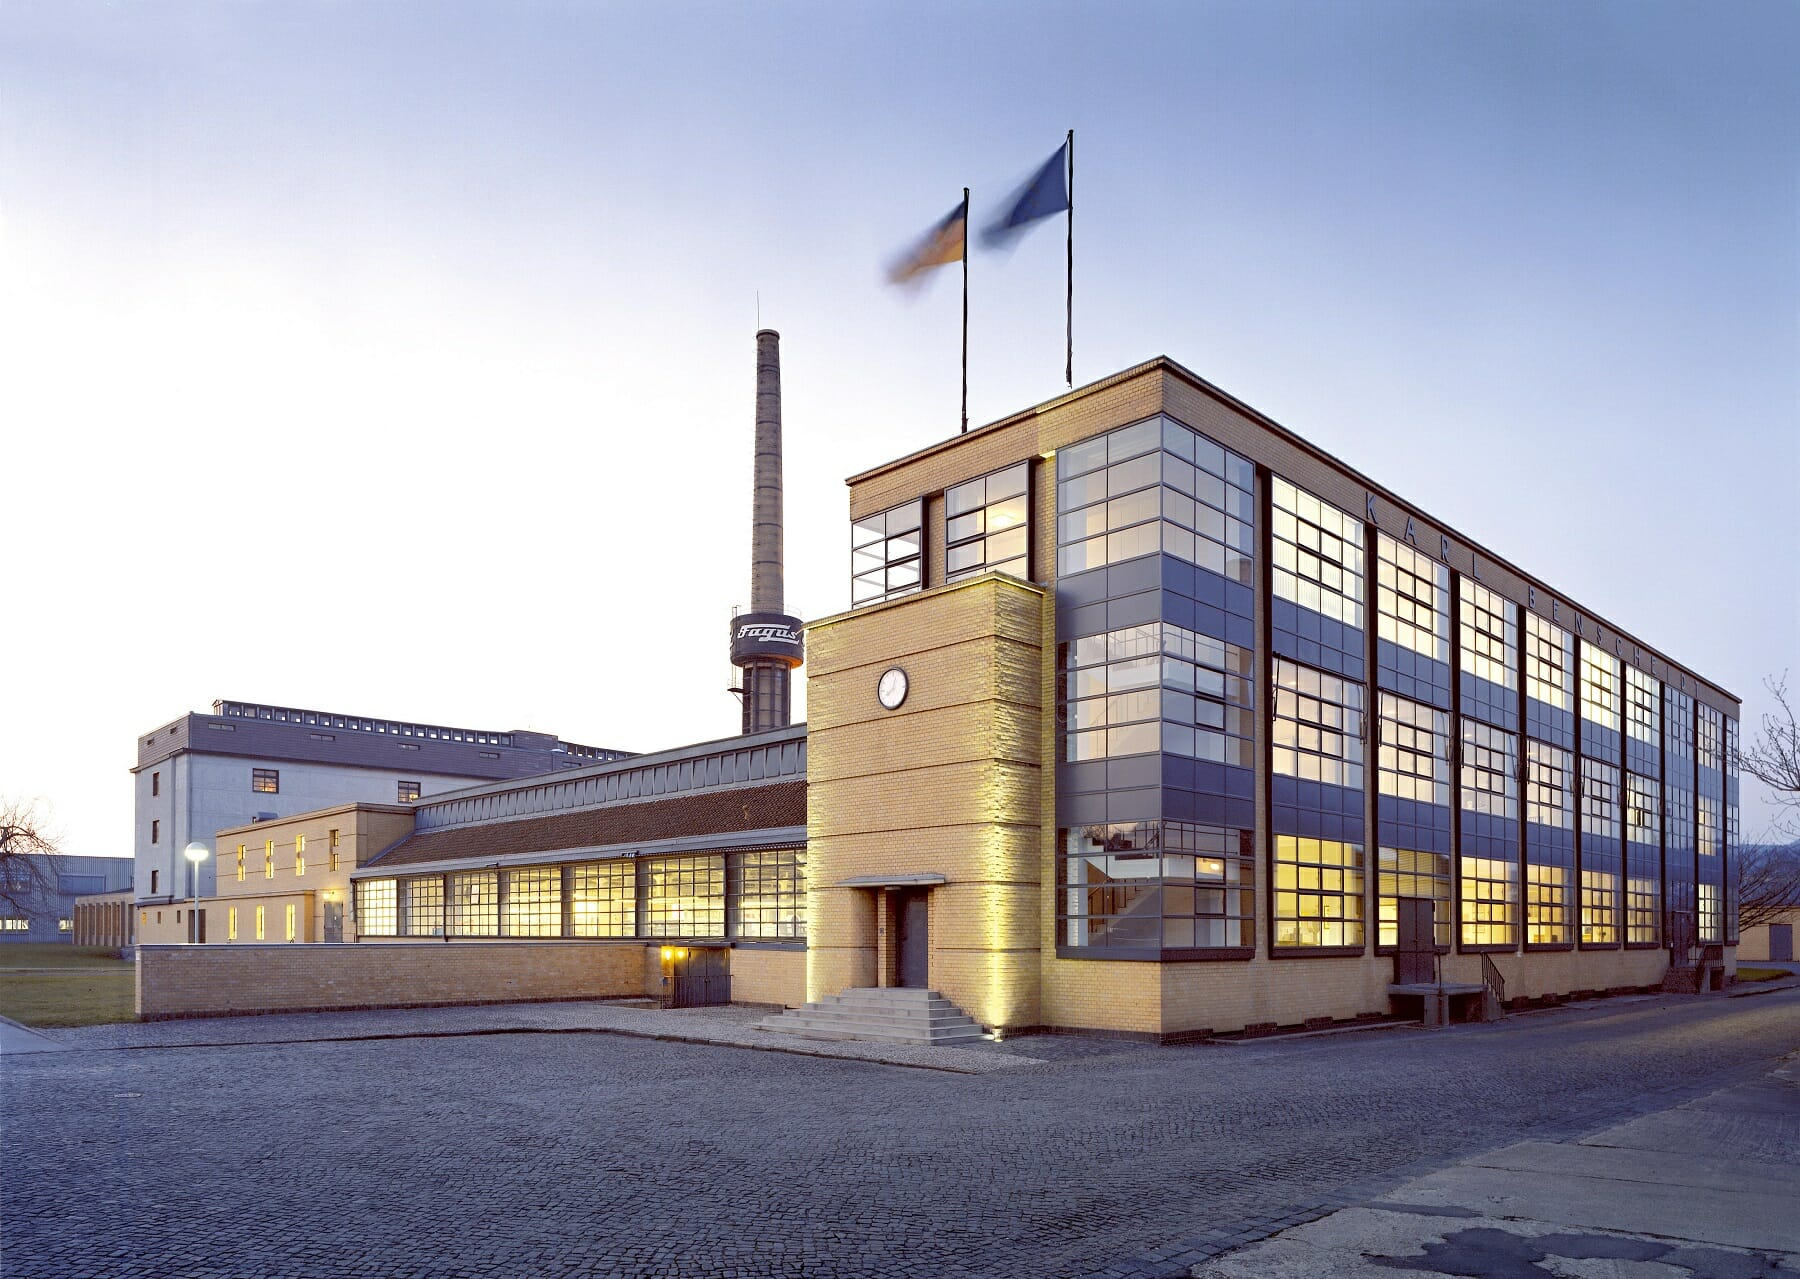 fagus_factory_front_view-klein